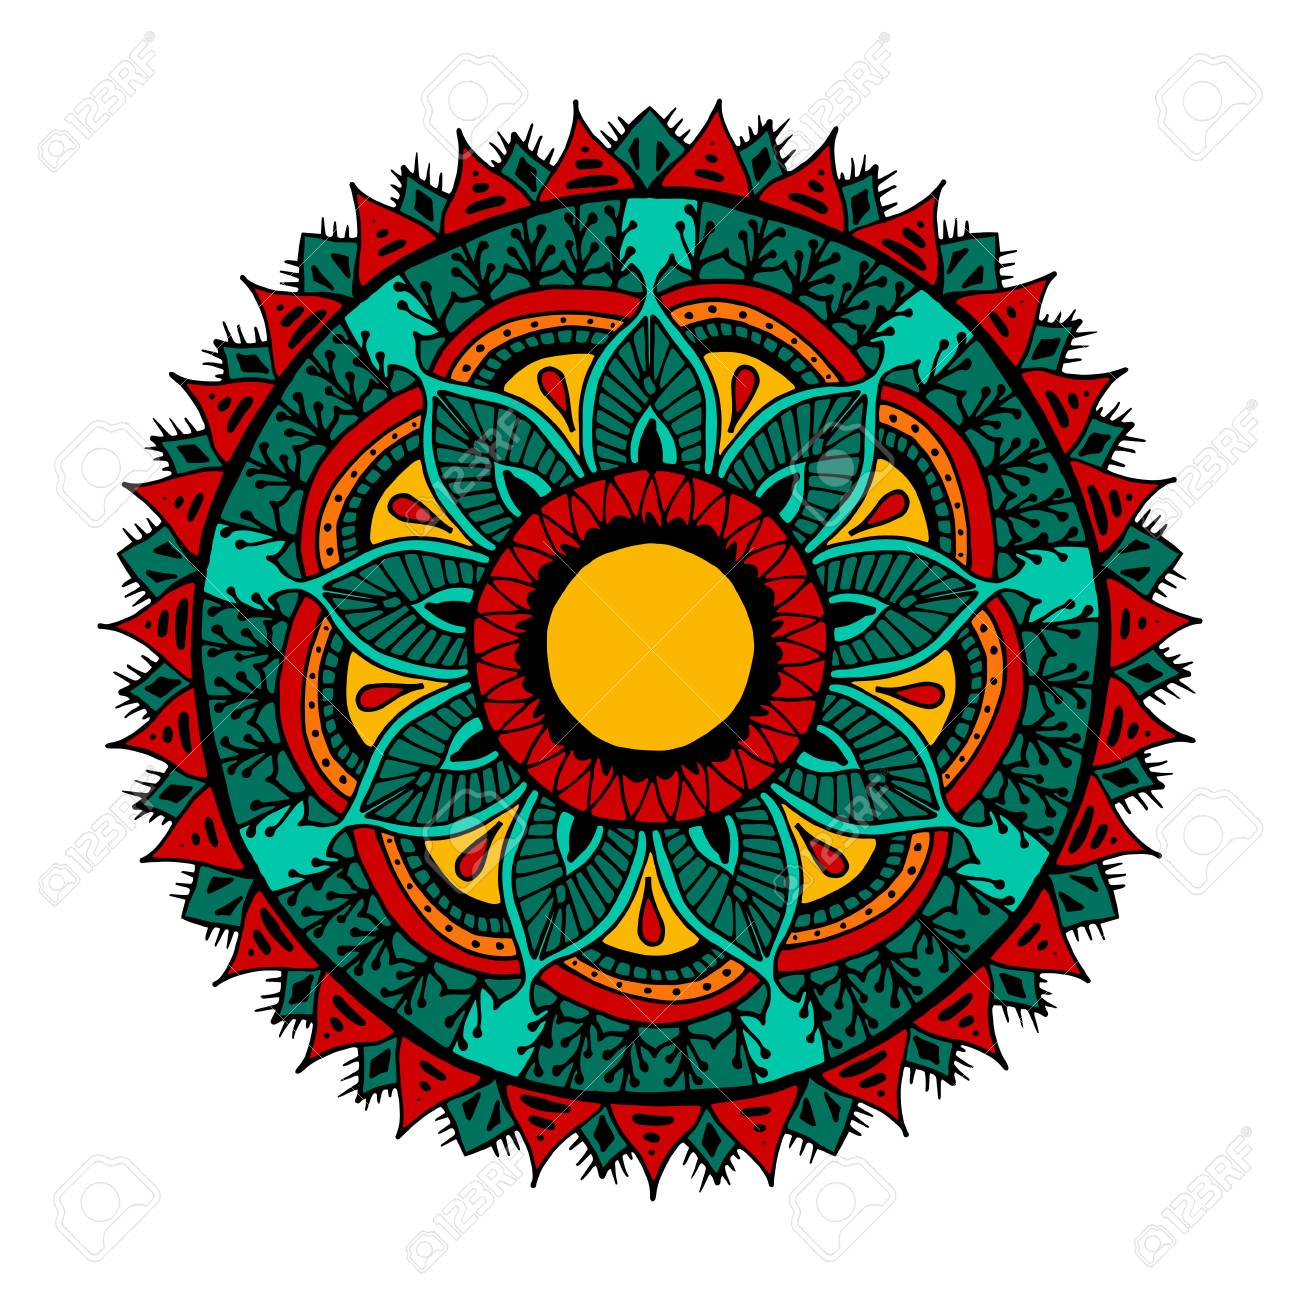 Flower Mandala For Cards, Prints, Textile And Coloring Books ...